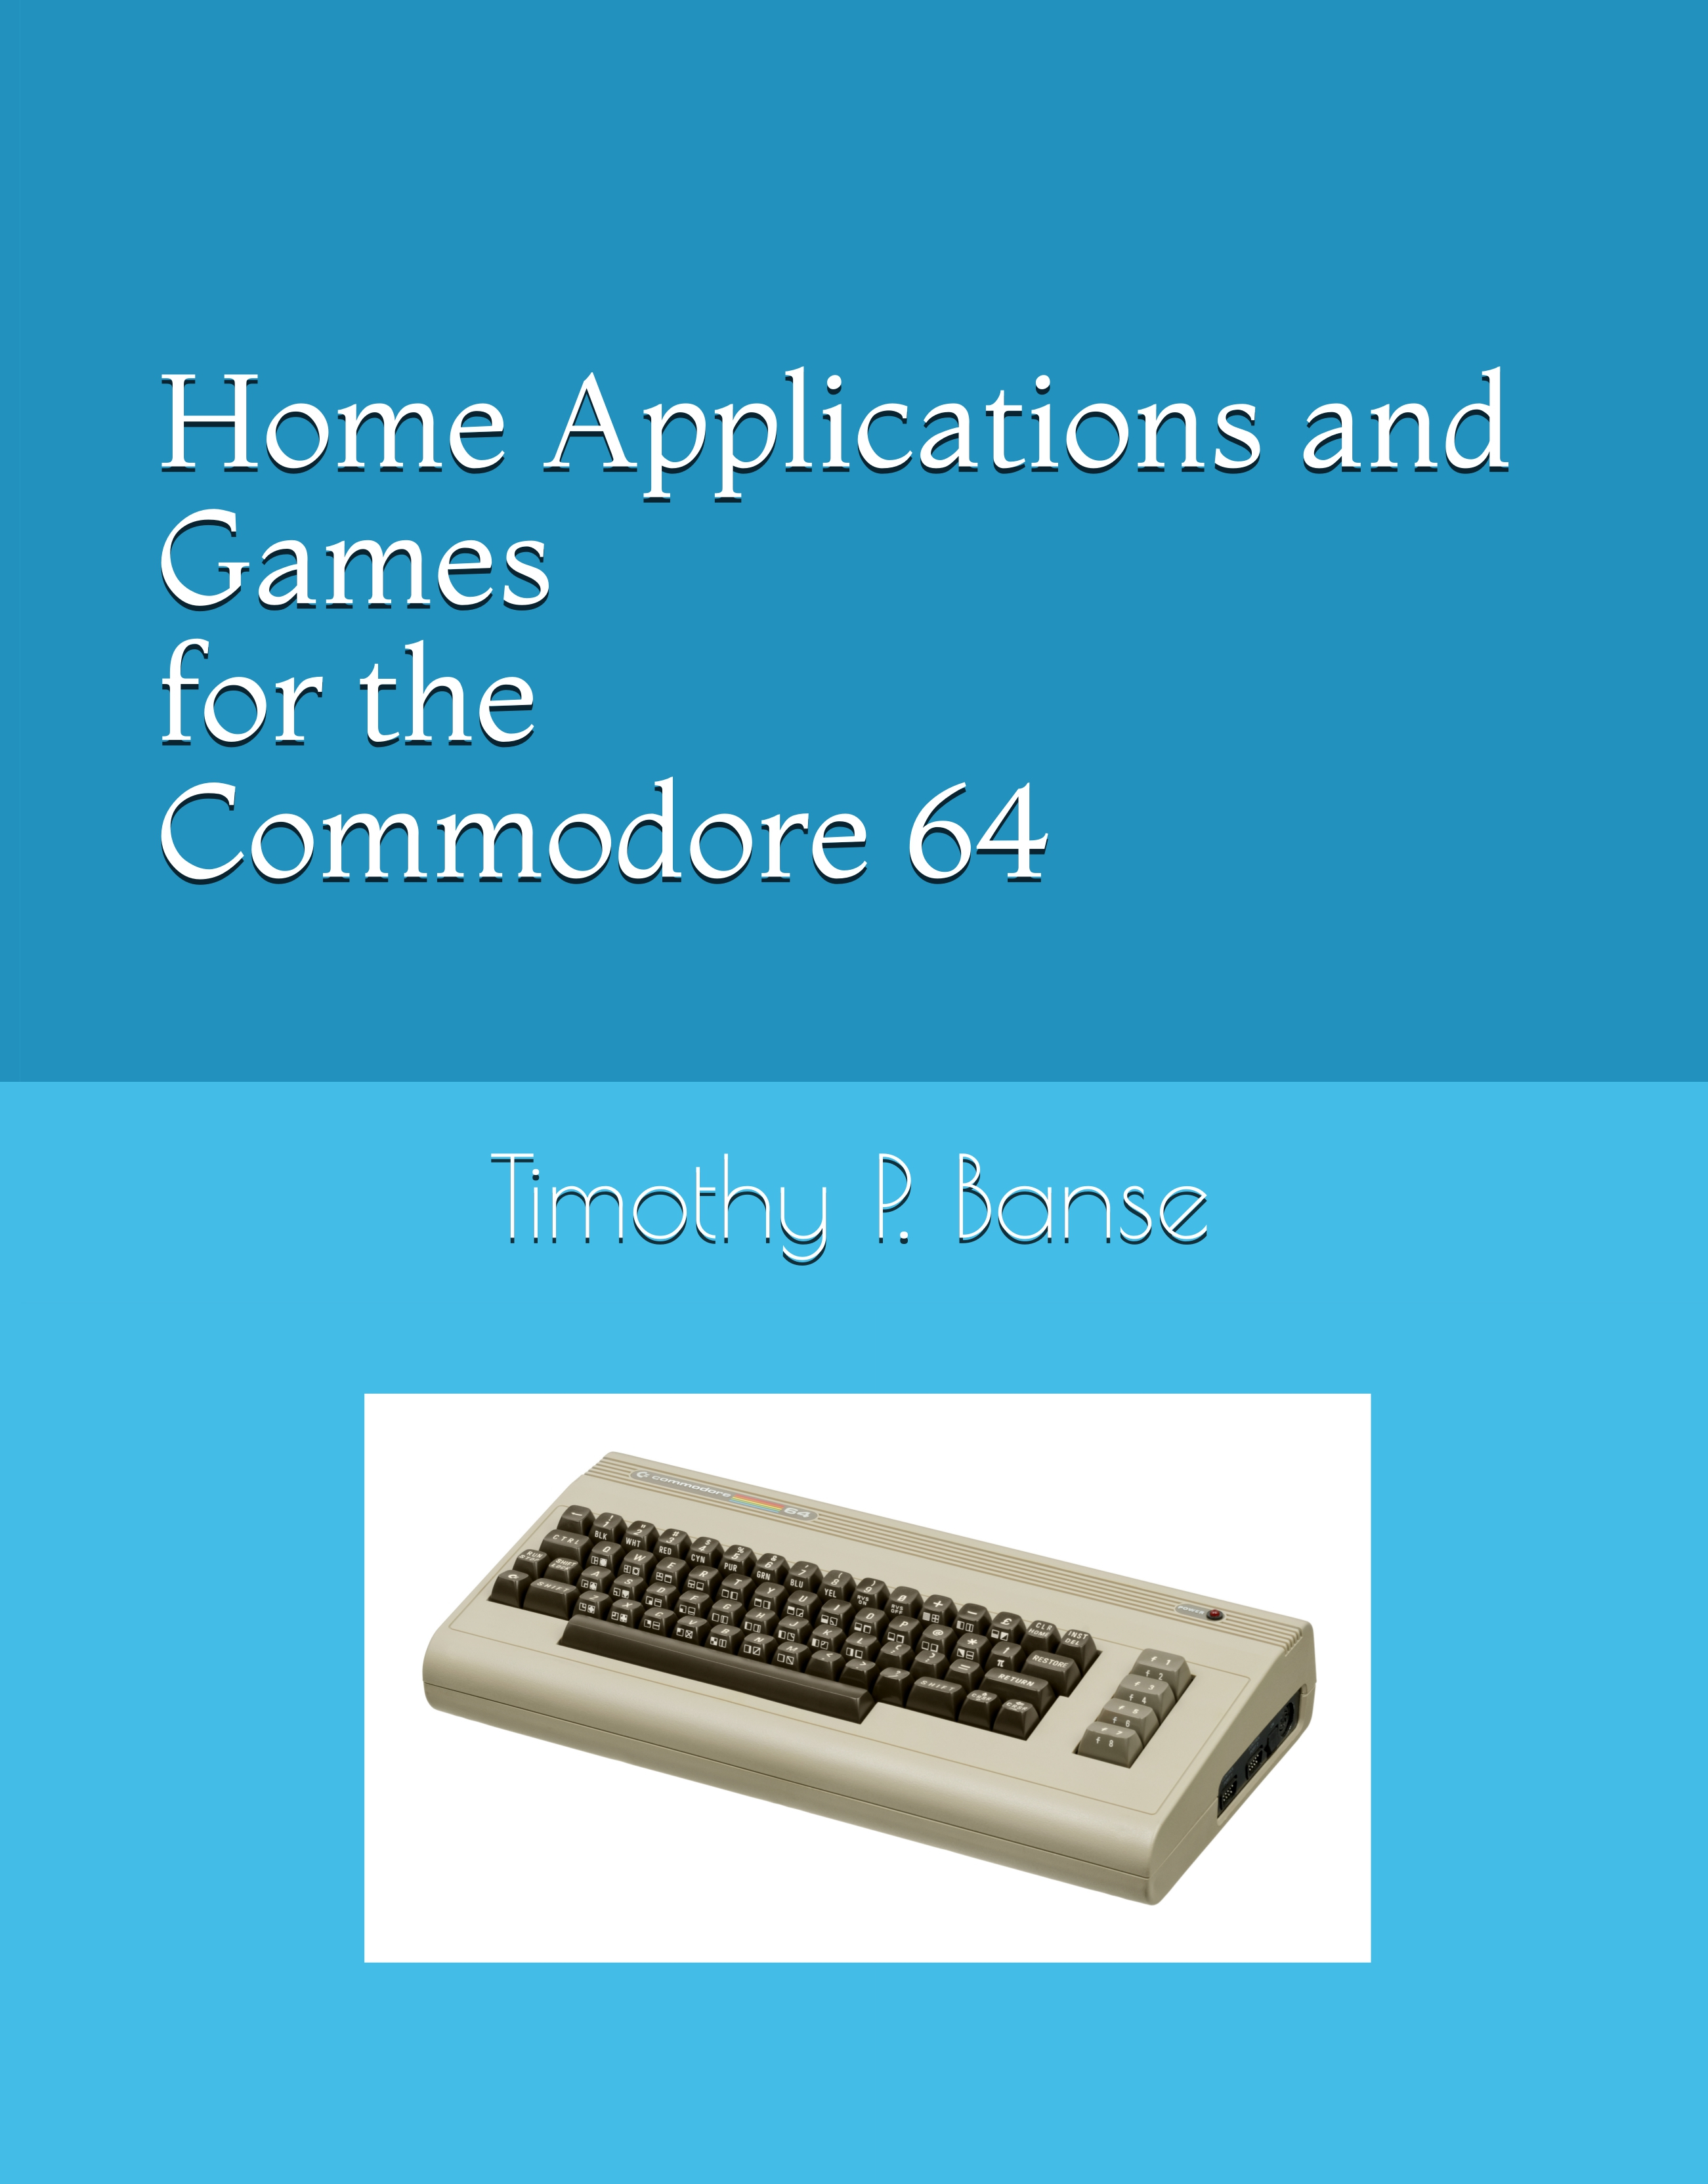 home applications and games for the Commodor 64 Personal Compute personal computer book